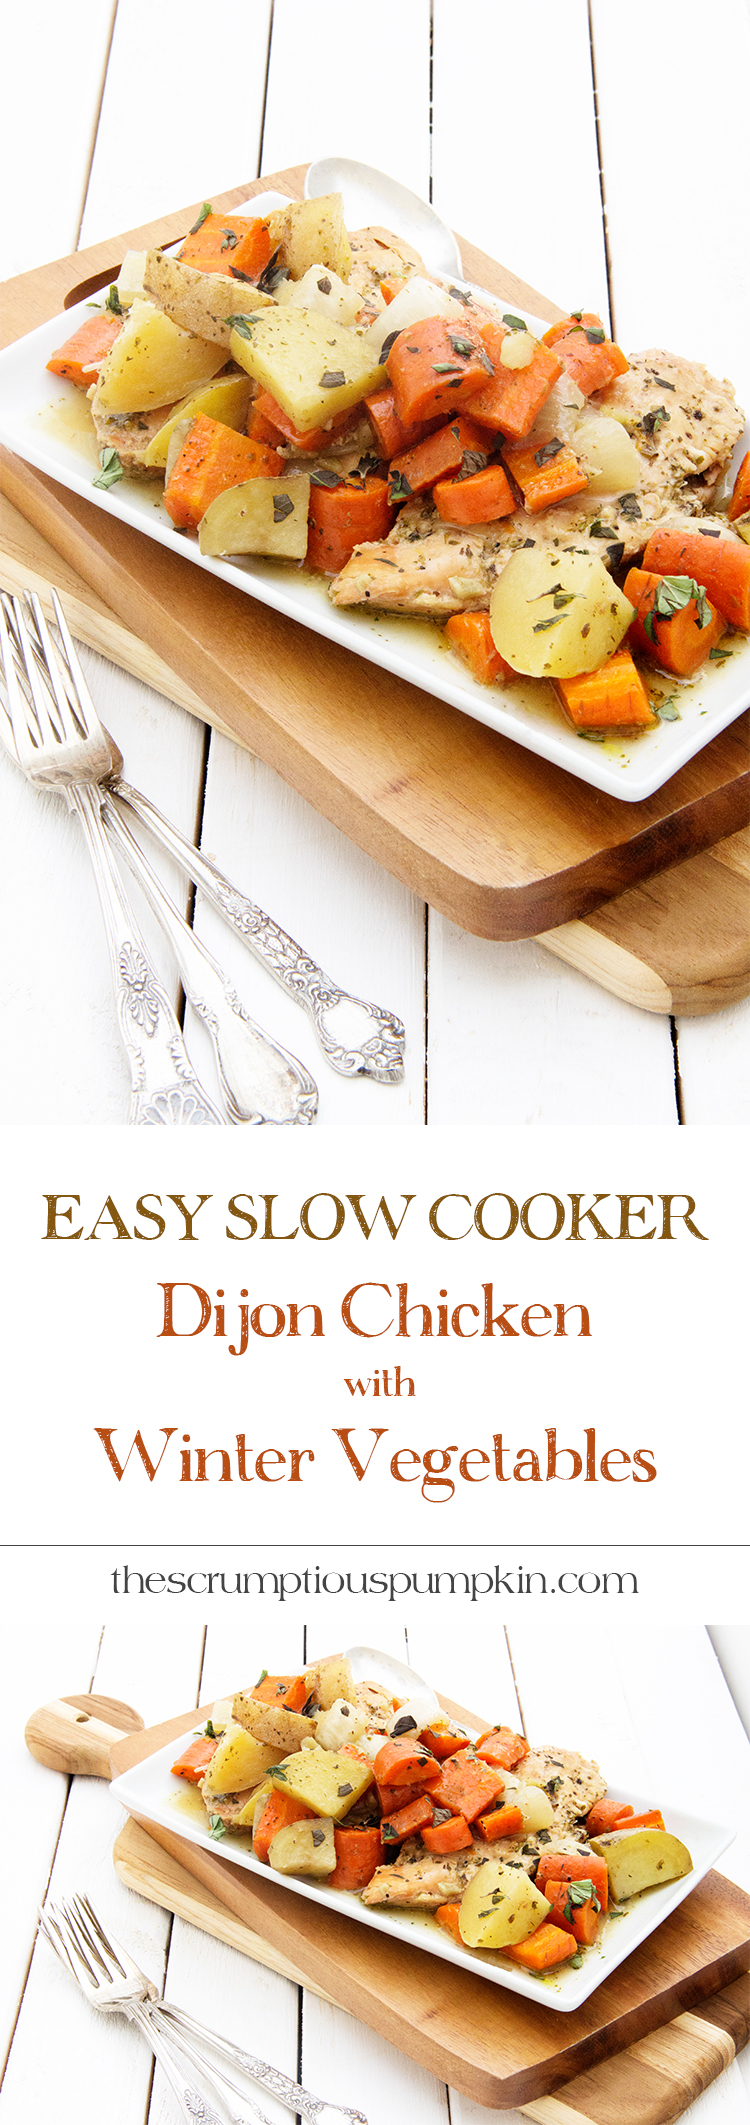 Easy-Healthy-Slow-Cooker-Dijon-Chicken-with-Winter-Vegetables